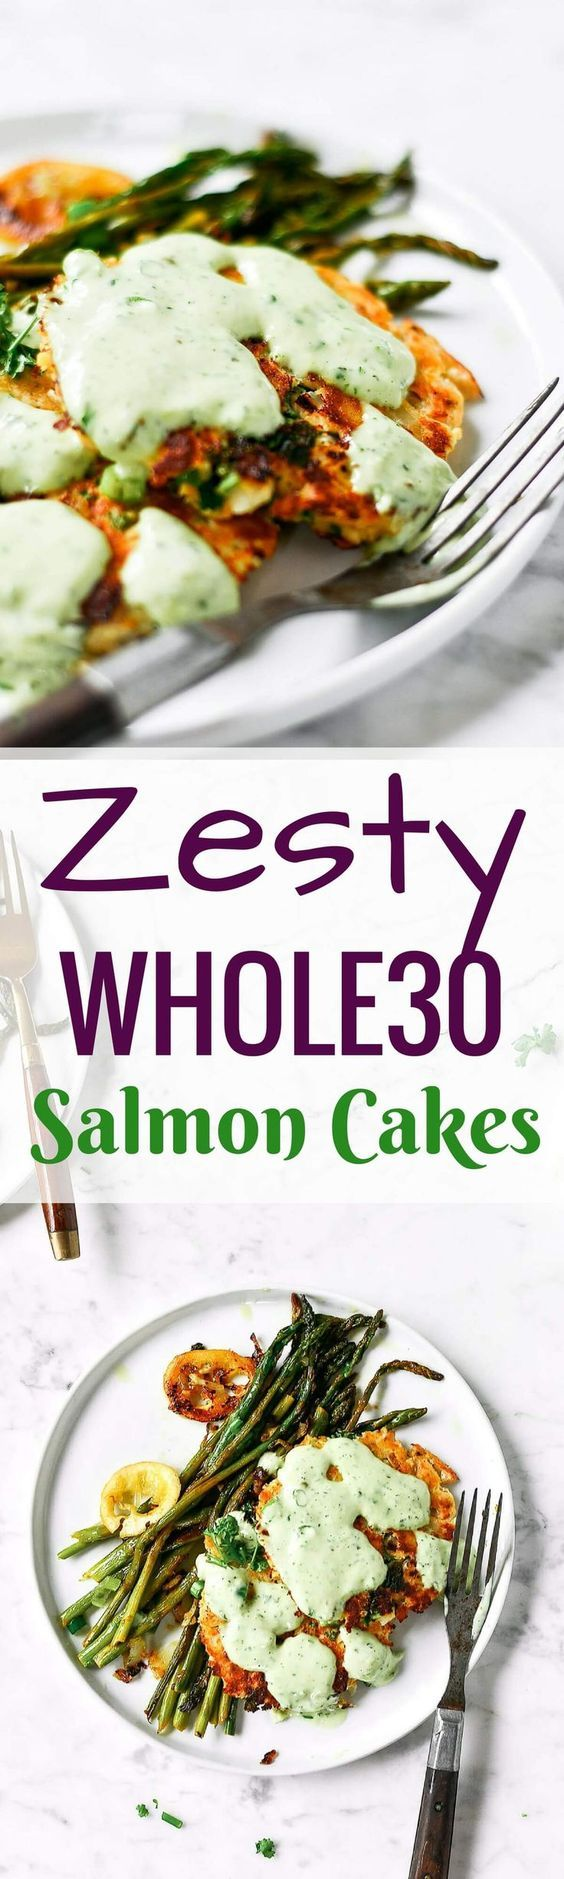 Best zesty herb salmon burgers w/ lemon asparagus & tzatziki sauce! Easy & delicious whole30 meal. Ready in 20 minutes! Paleo & Whole30.